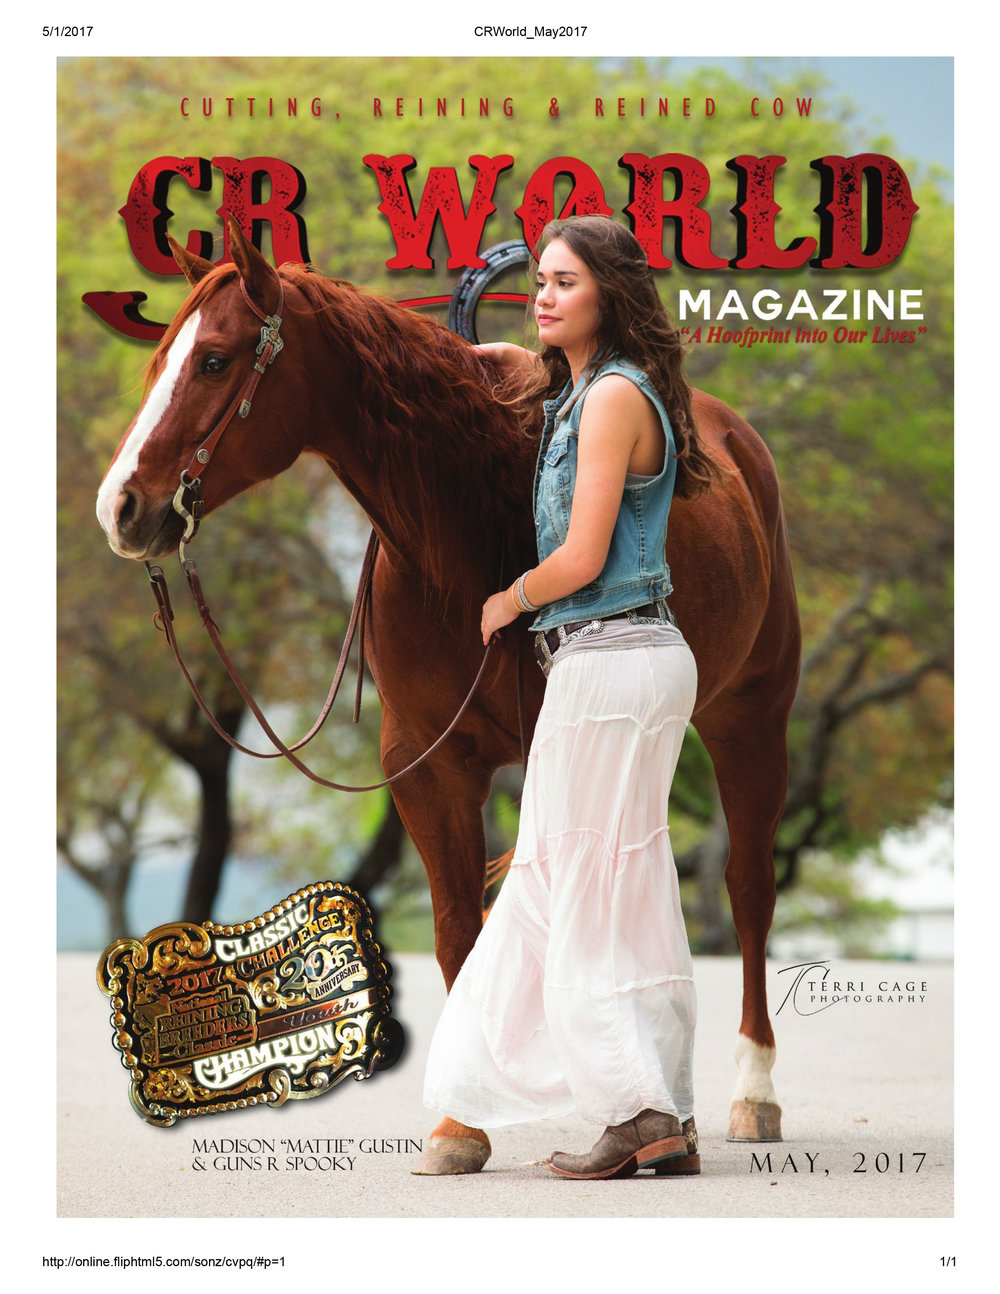 CRWorld_May2017 cover.jpg